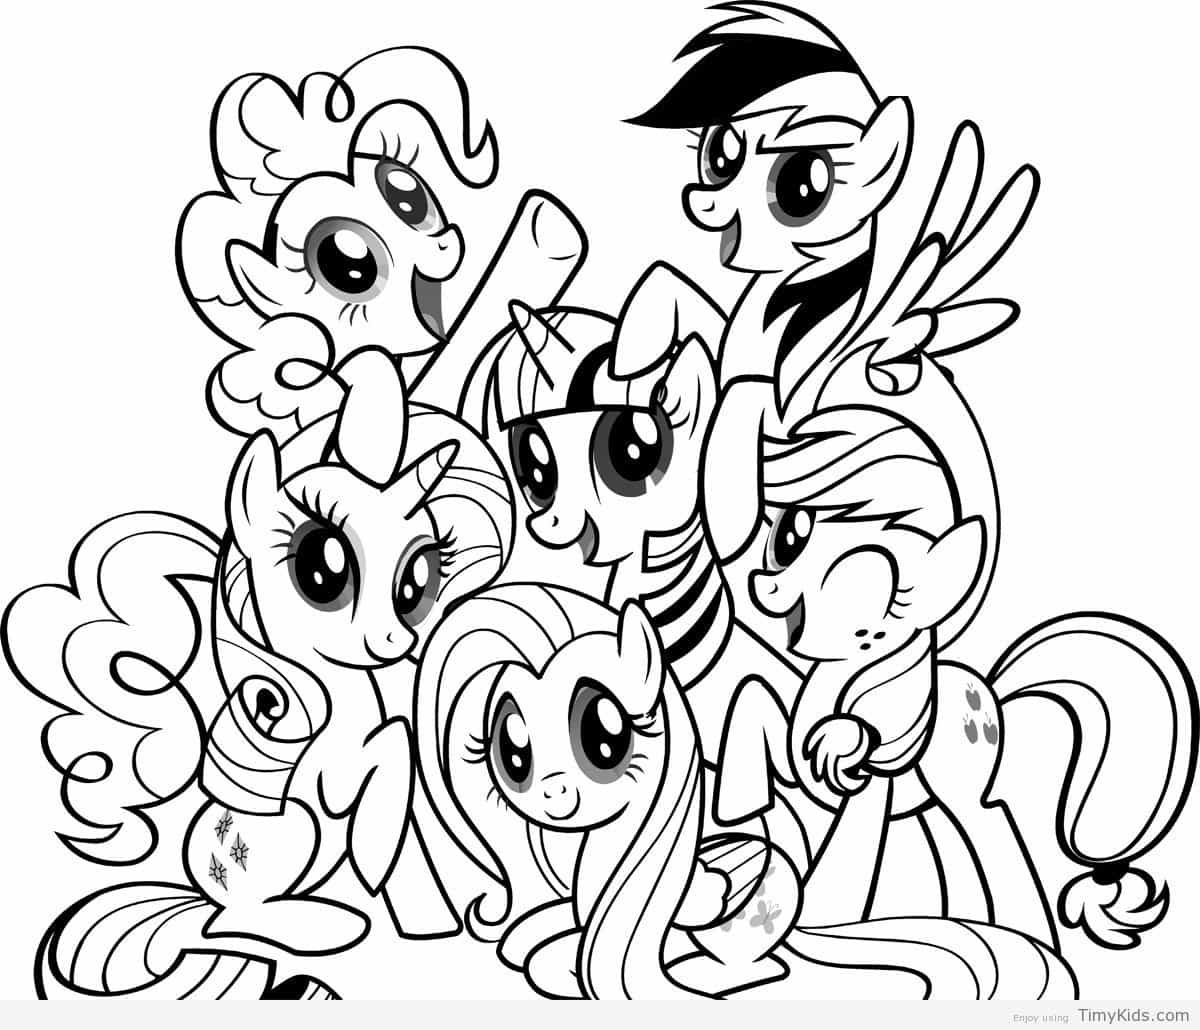 http://timykids.com/coloring-pages-for-girls-my-little-pony.html ...